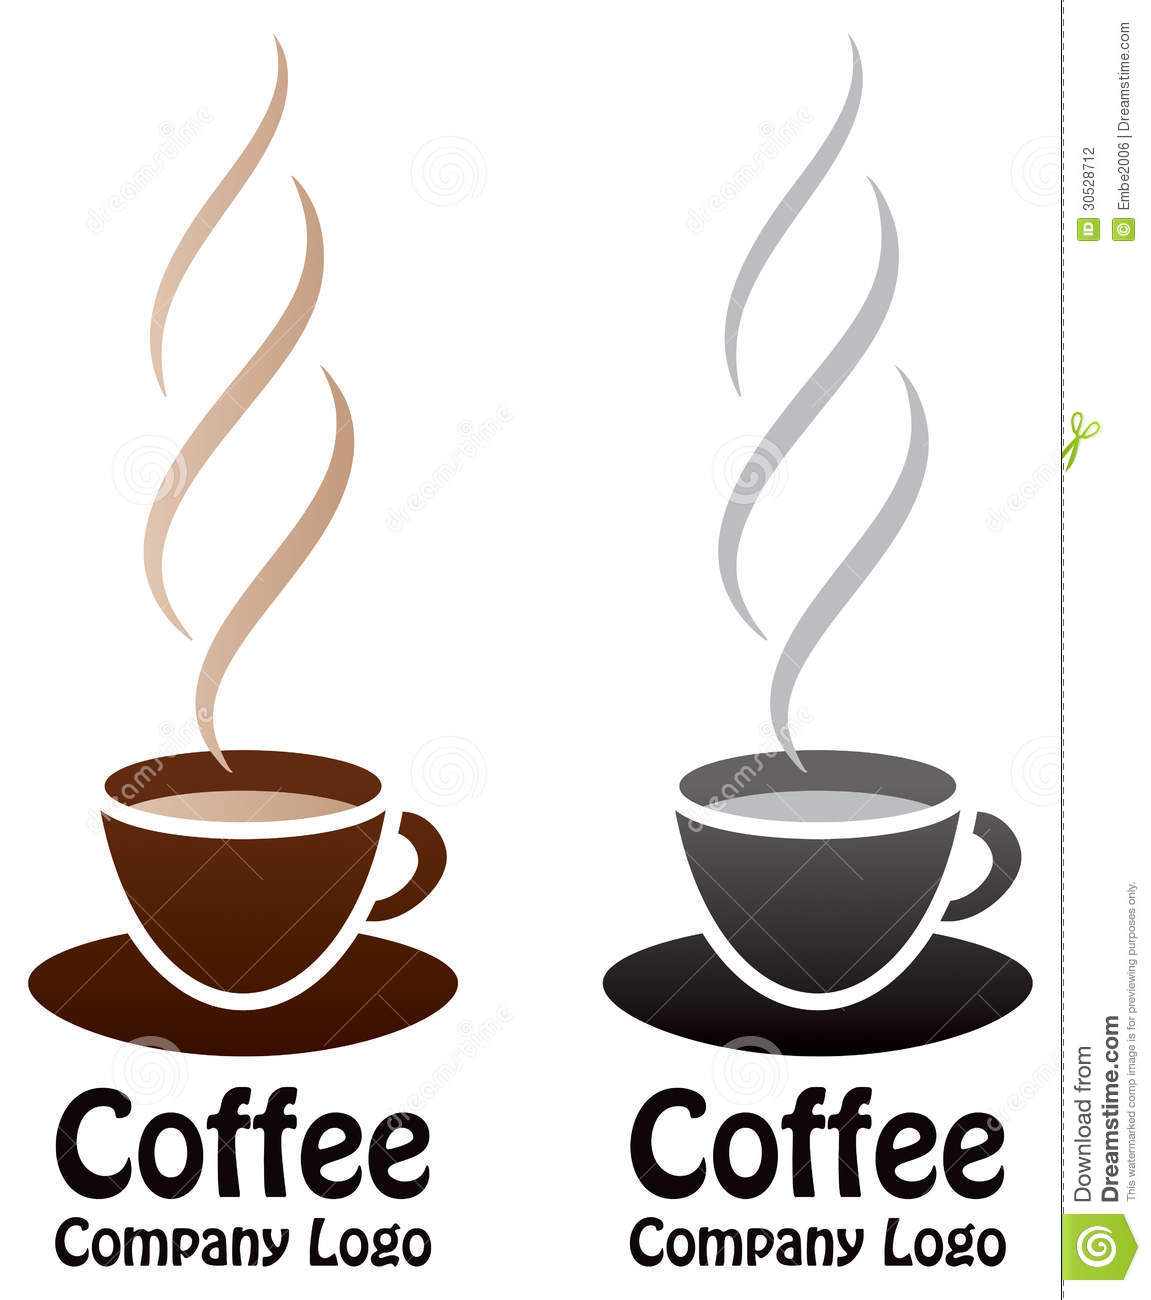 Coffee Logo Stock Photography - Image: 30528712